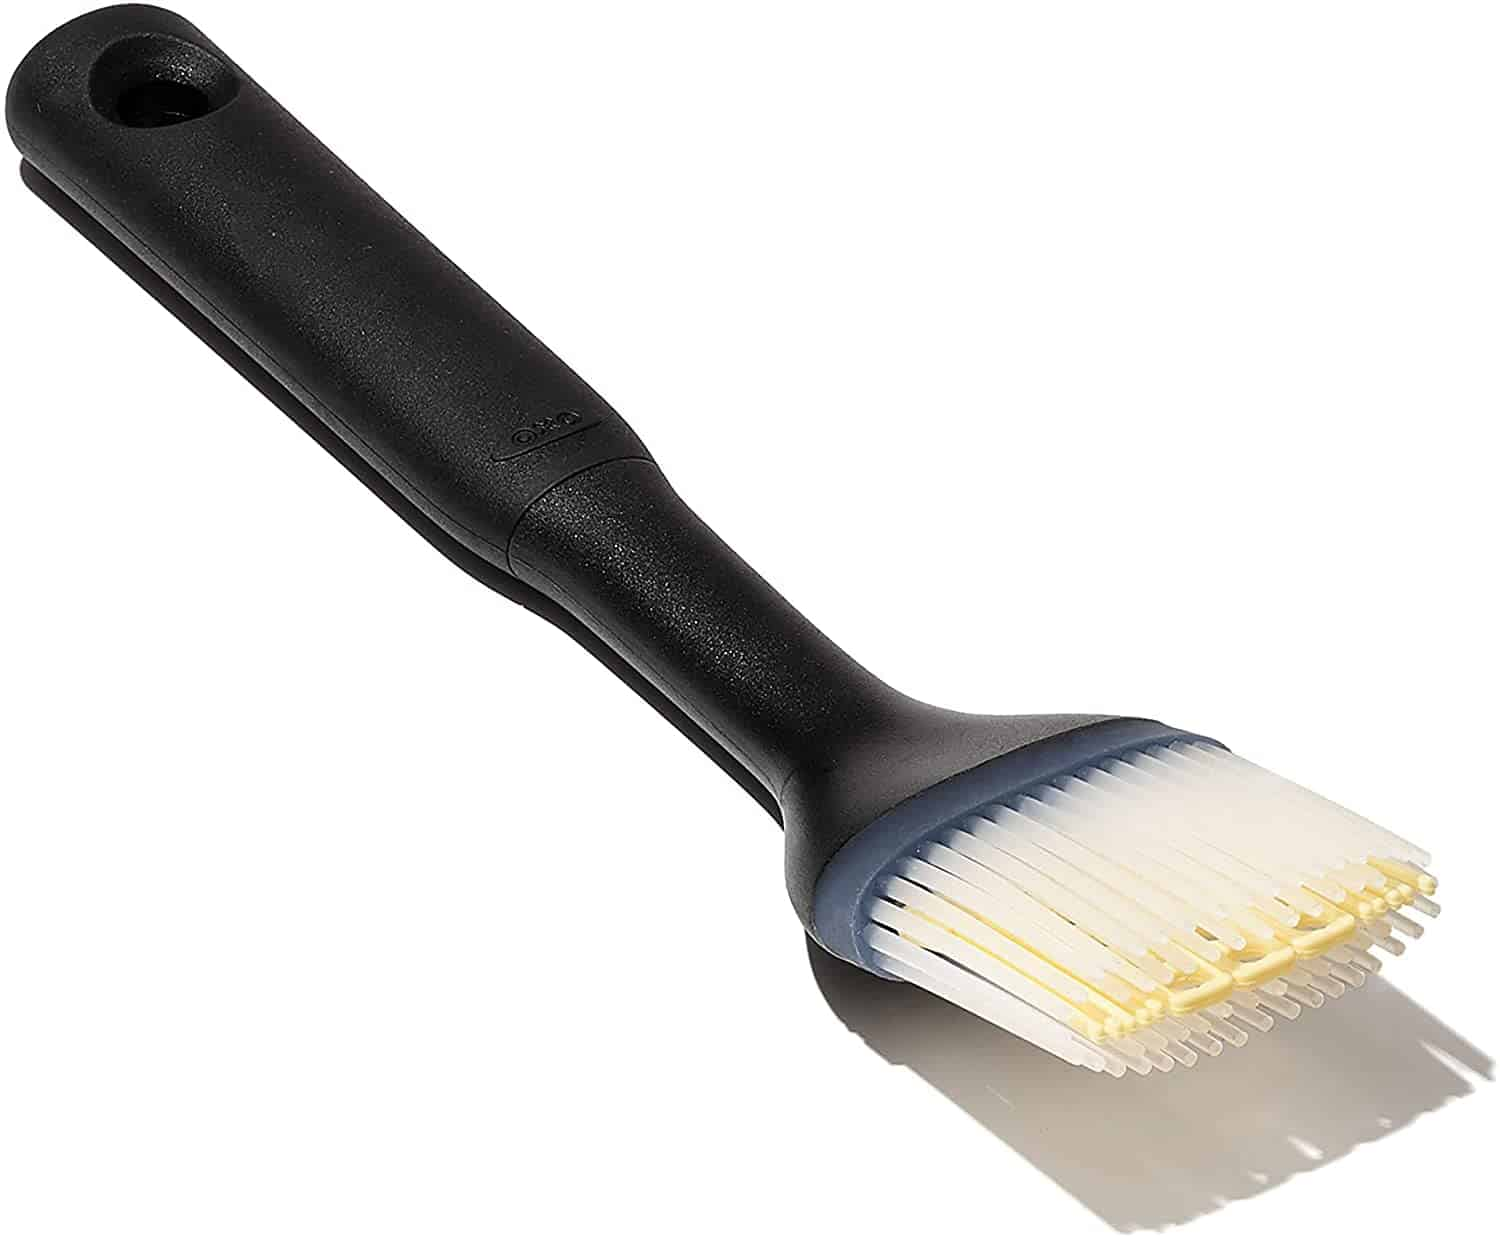 OXO Good Grips Silicone Basting & Pastry Brush